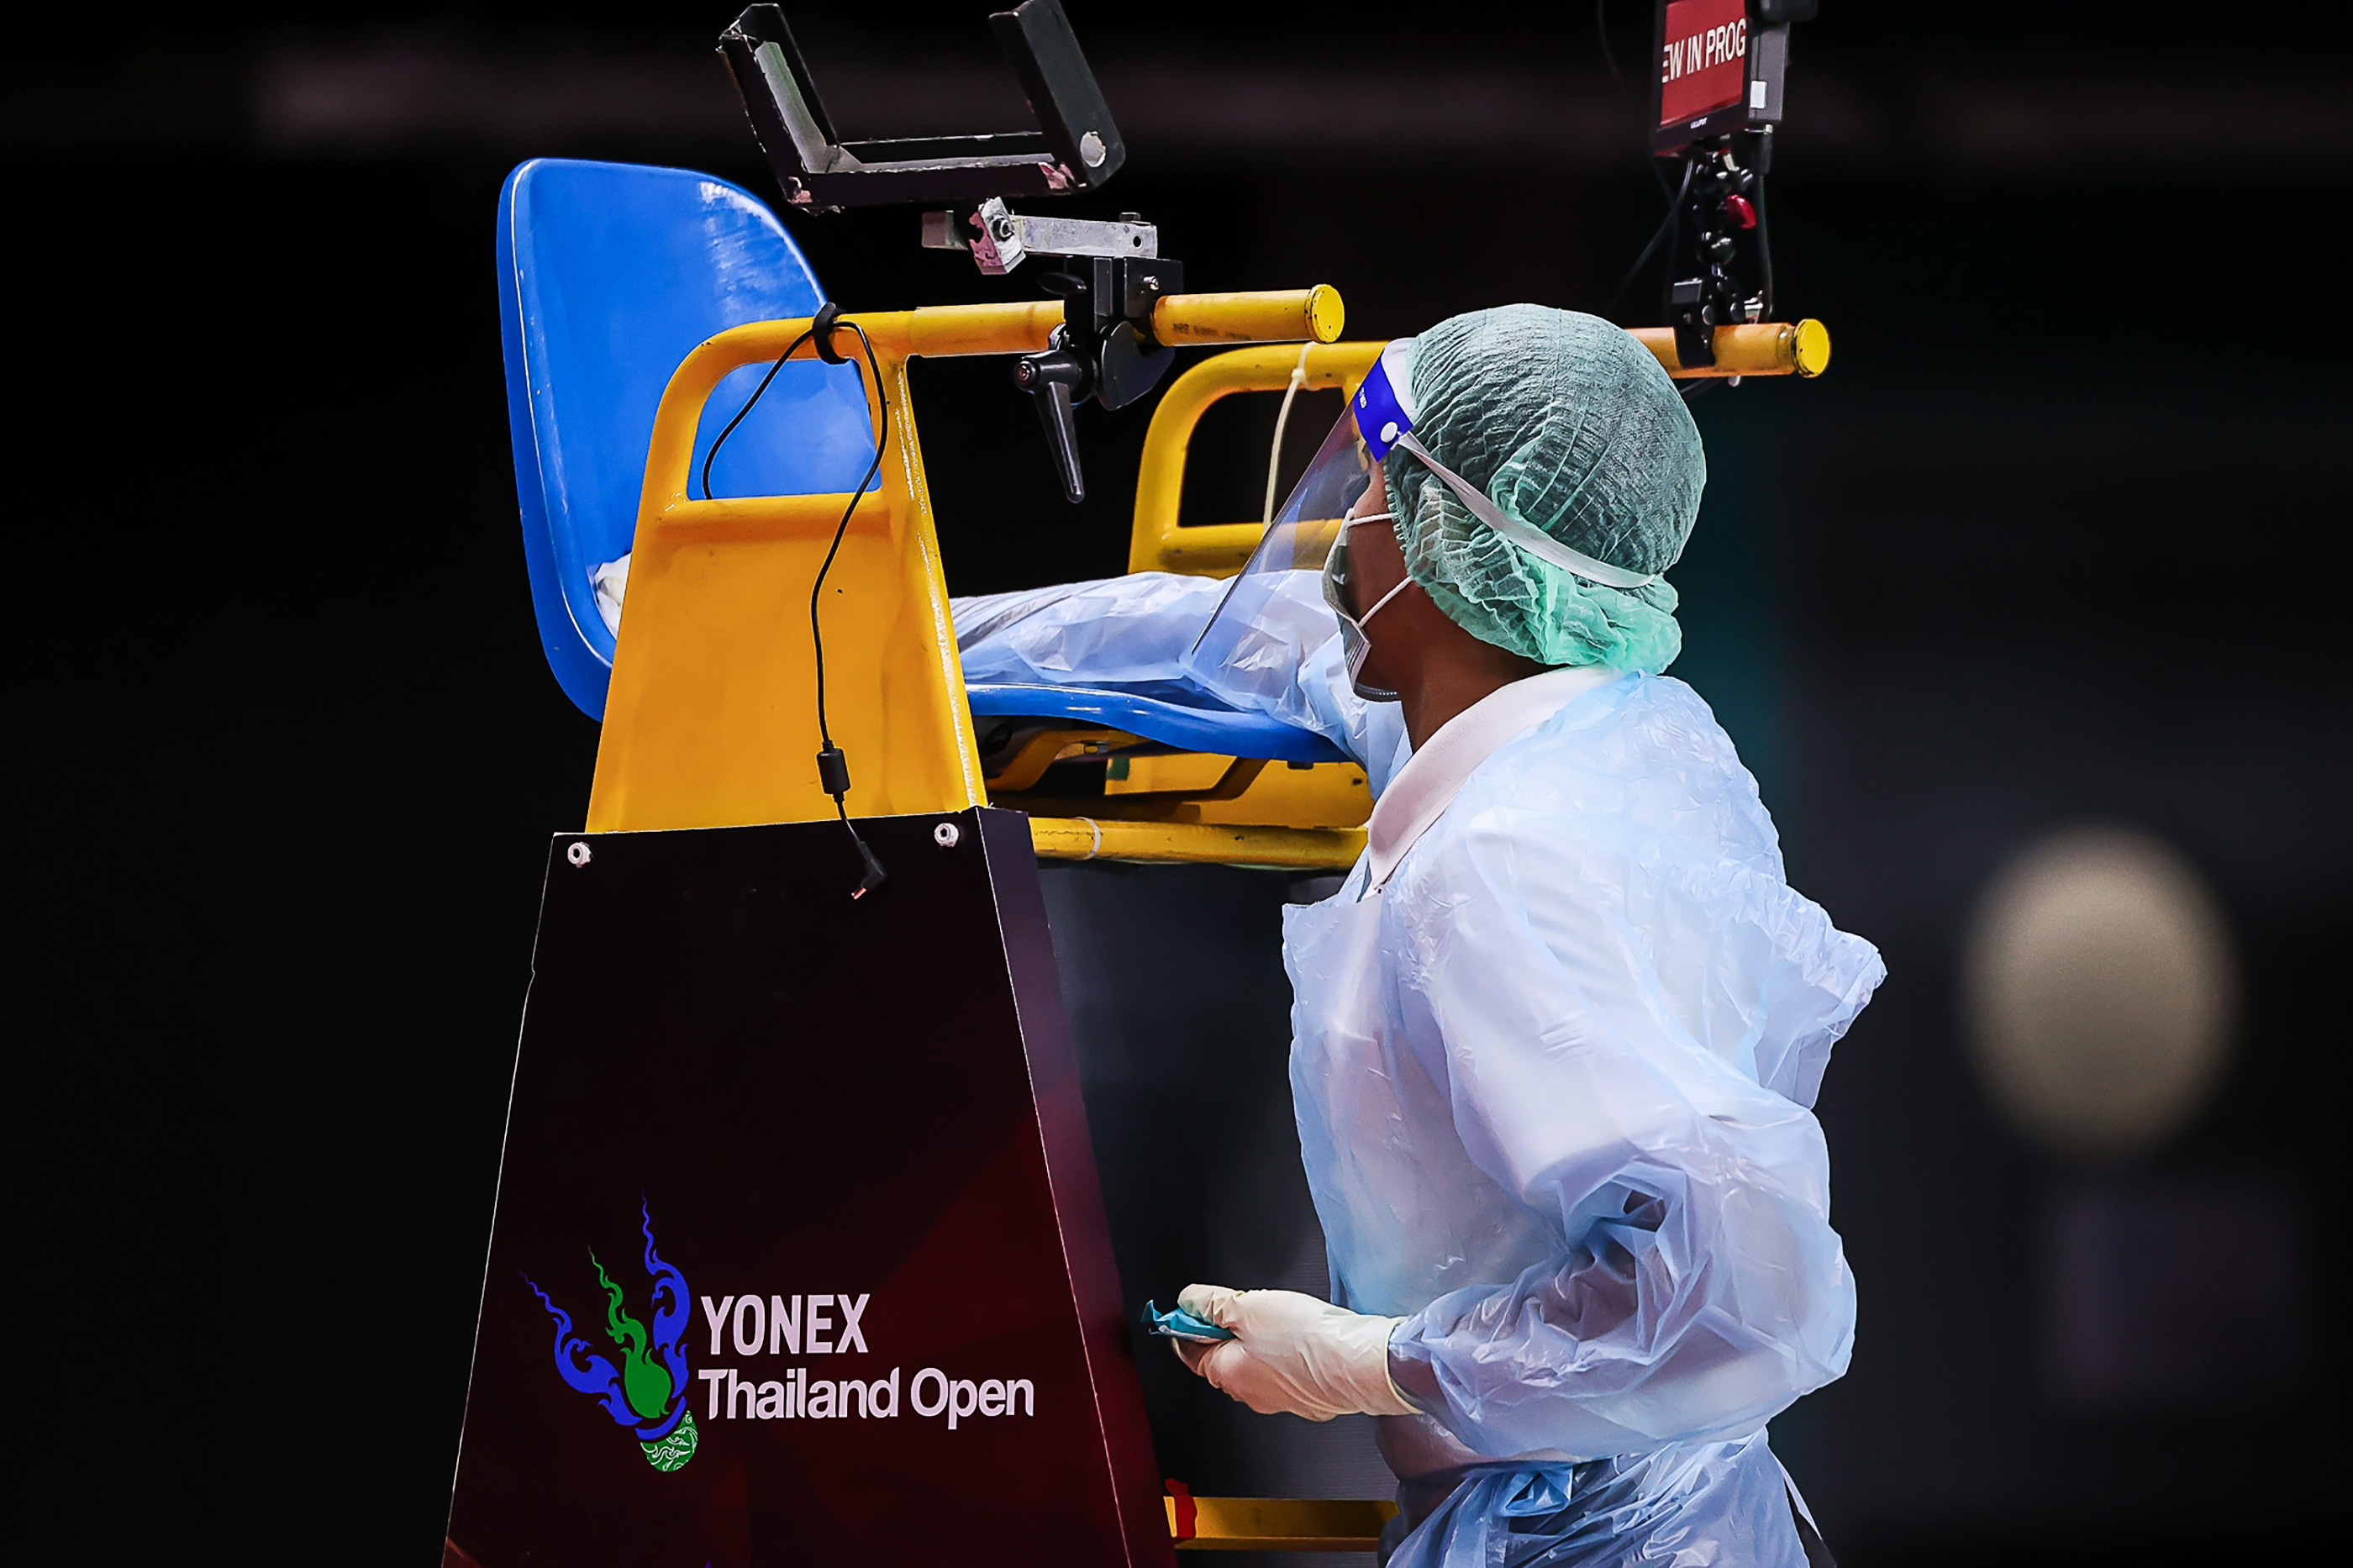 Four badminton players test positive for COVID-19 at Thailand Open